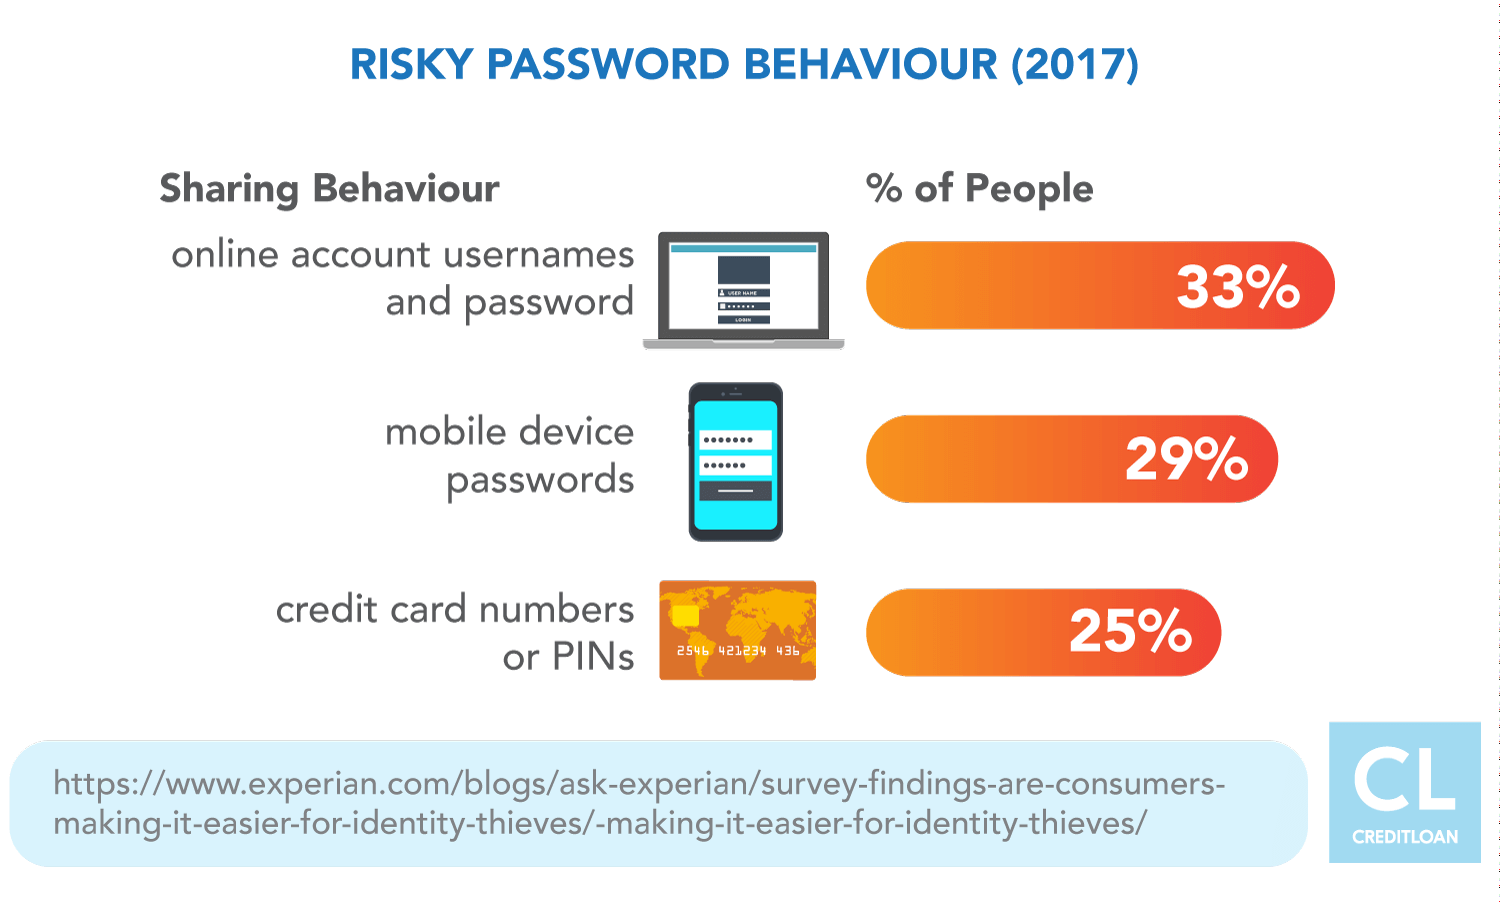 Risky Password Behavior in 2017